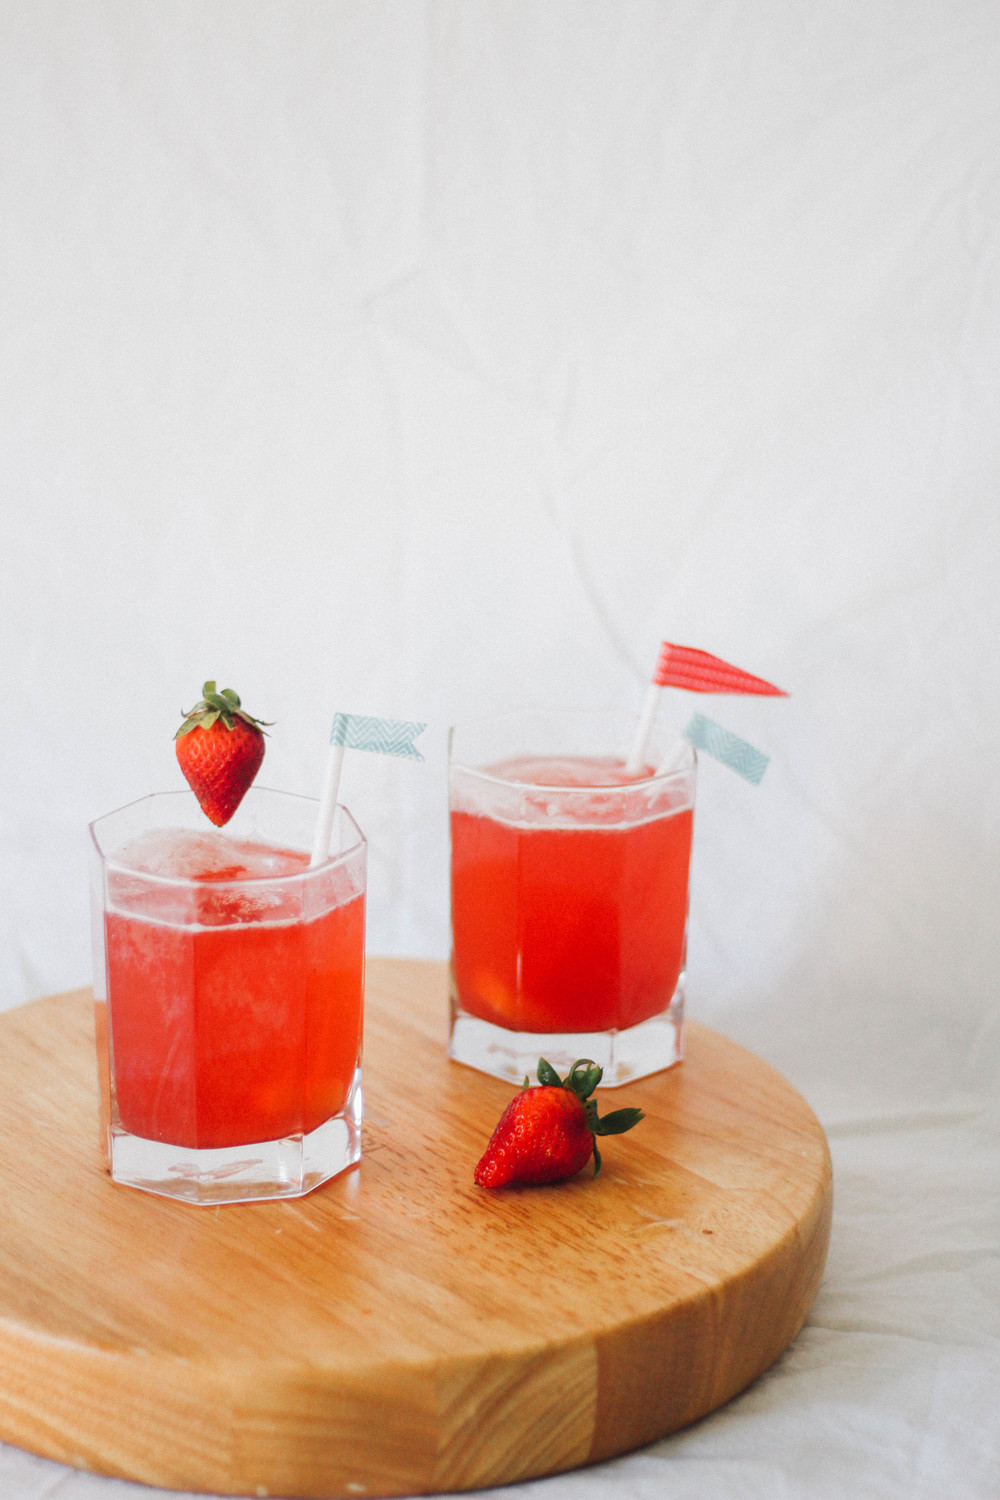 strawberry passionfruit fizz | MEUS-41.jpg